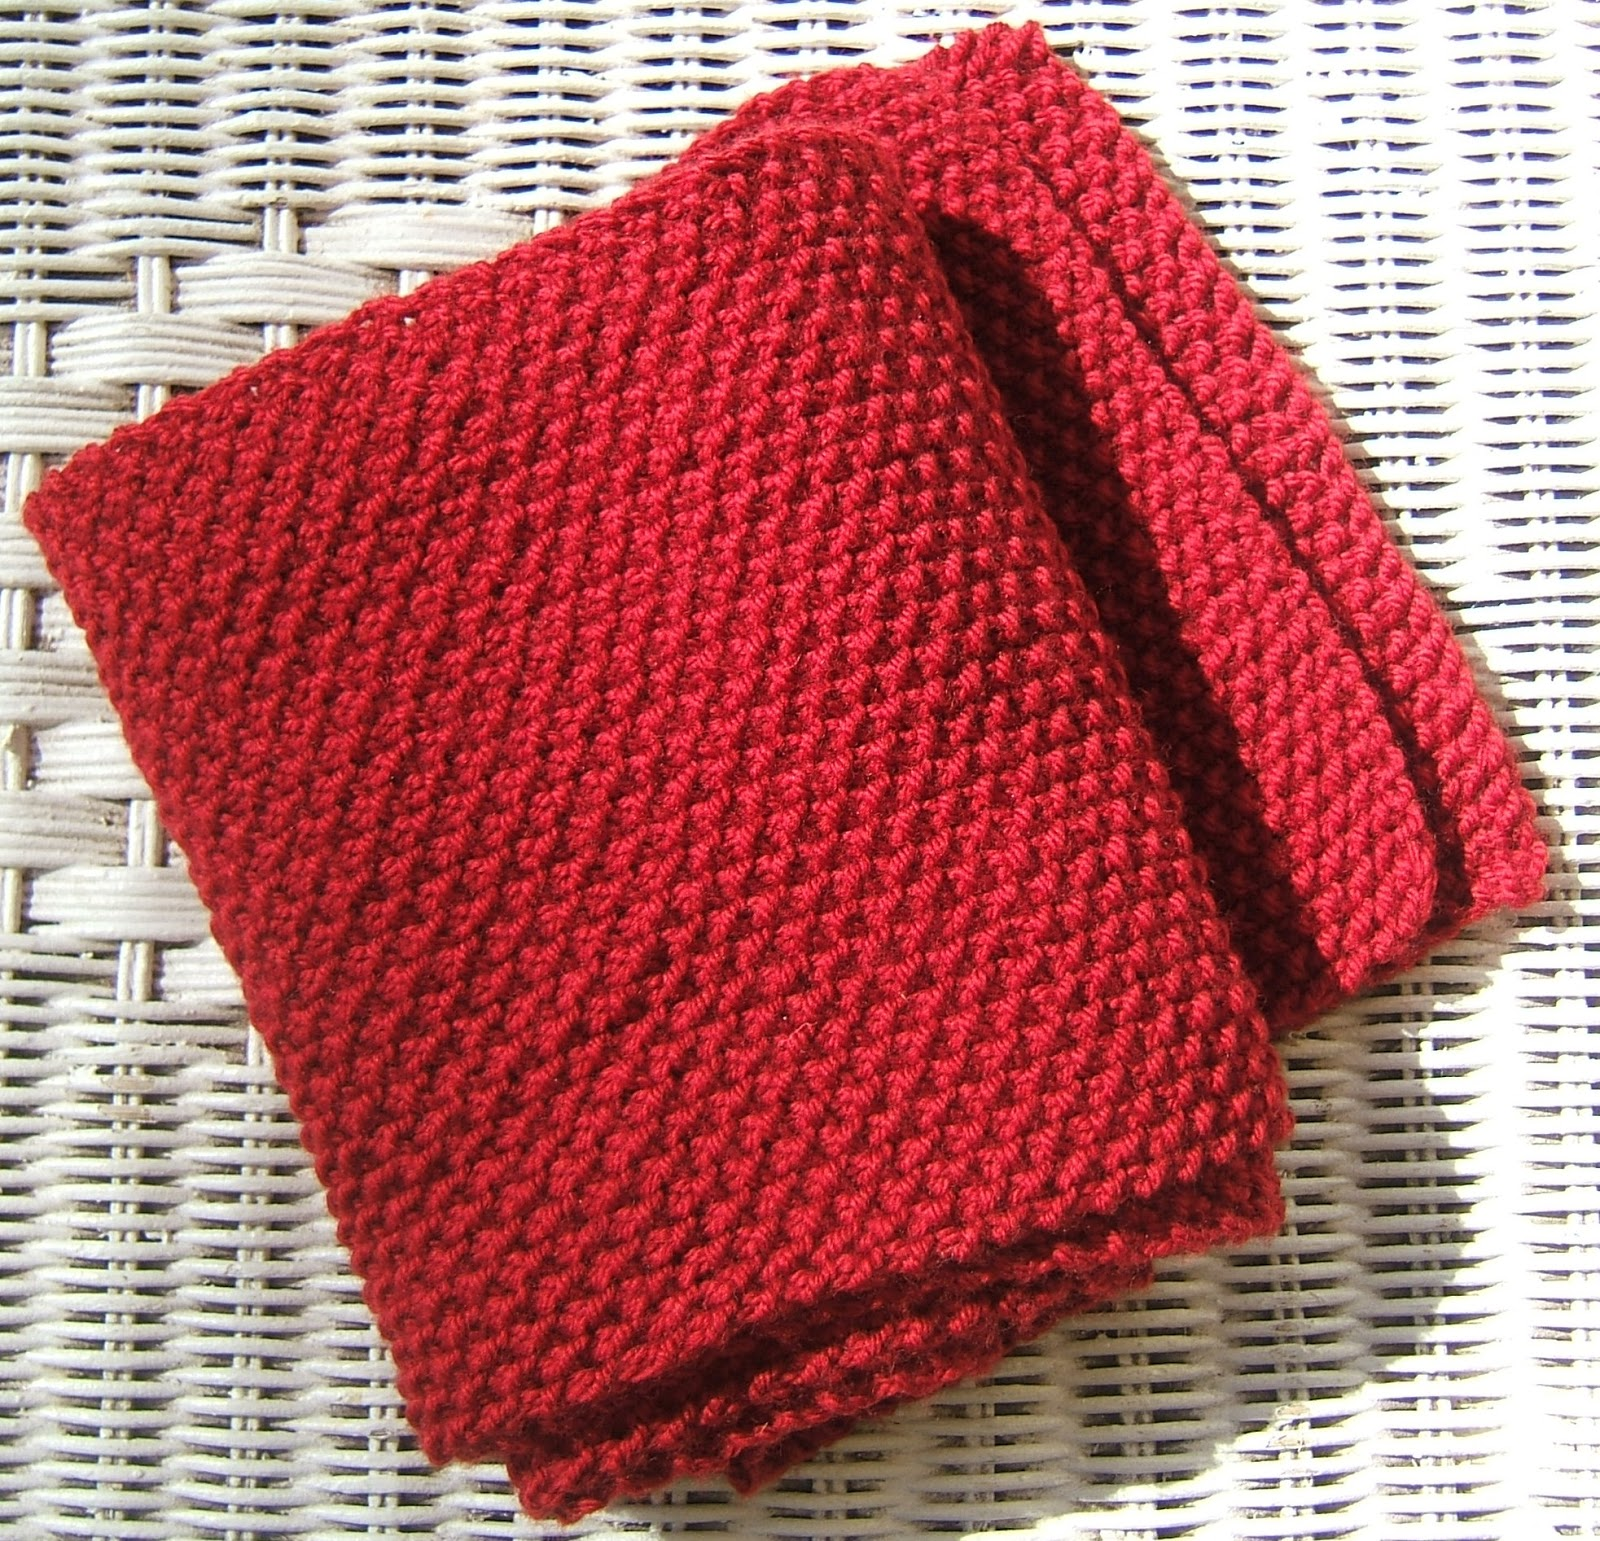 aussie knitting threads: Moss Stitch Scarf - Beginners